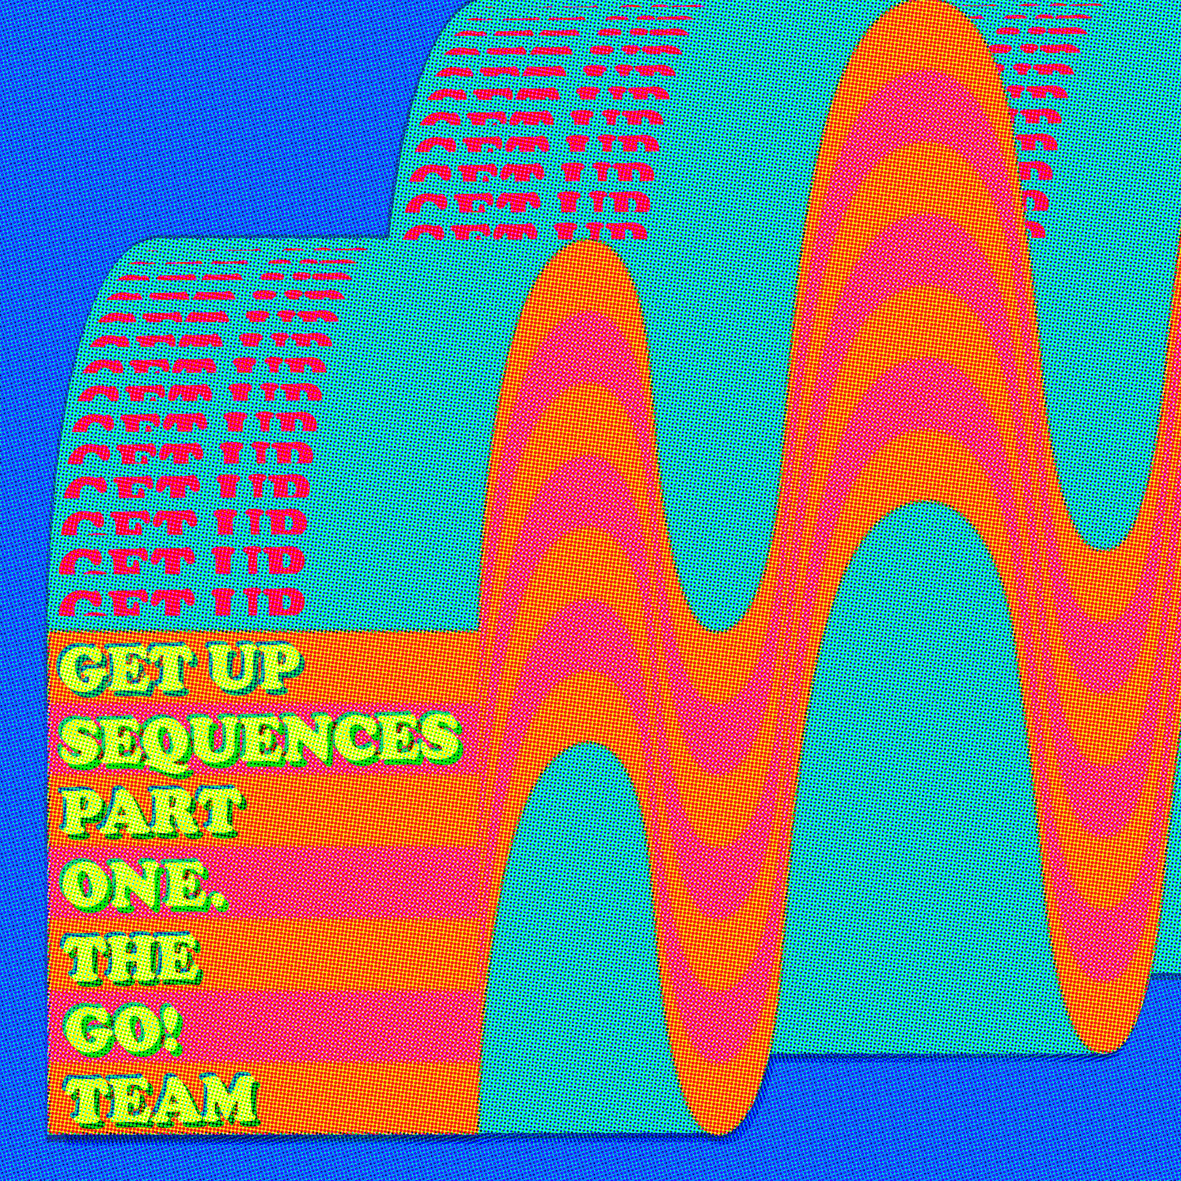 The Go! team 'Get Up Sequences Part One' cover artwork